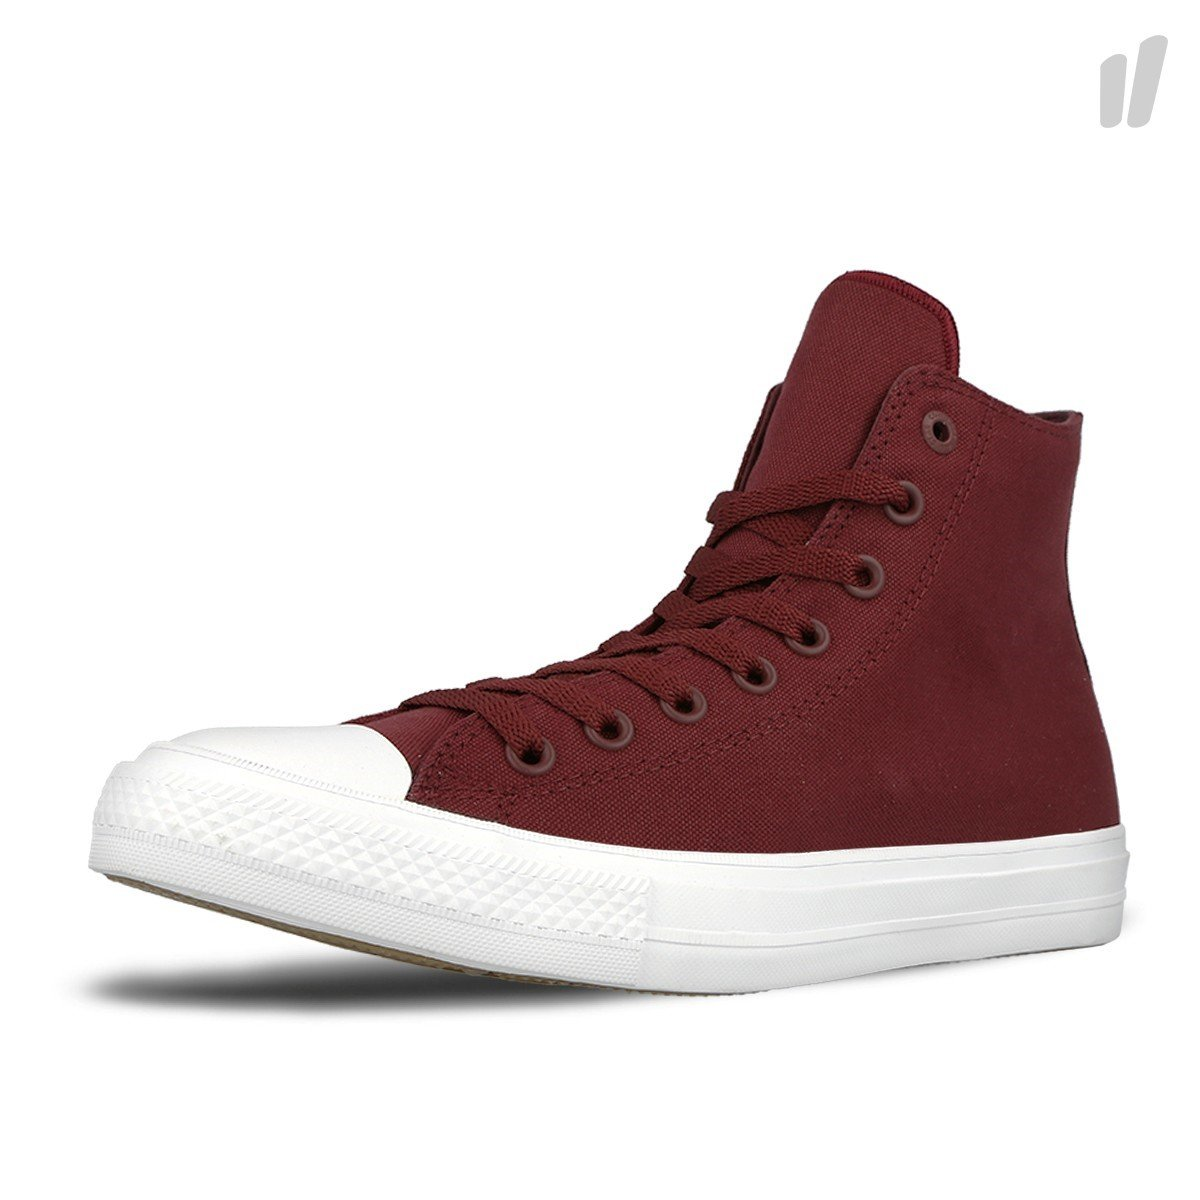 converse all stars bordeaux